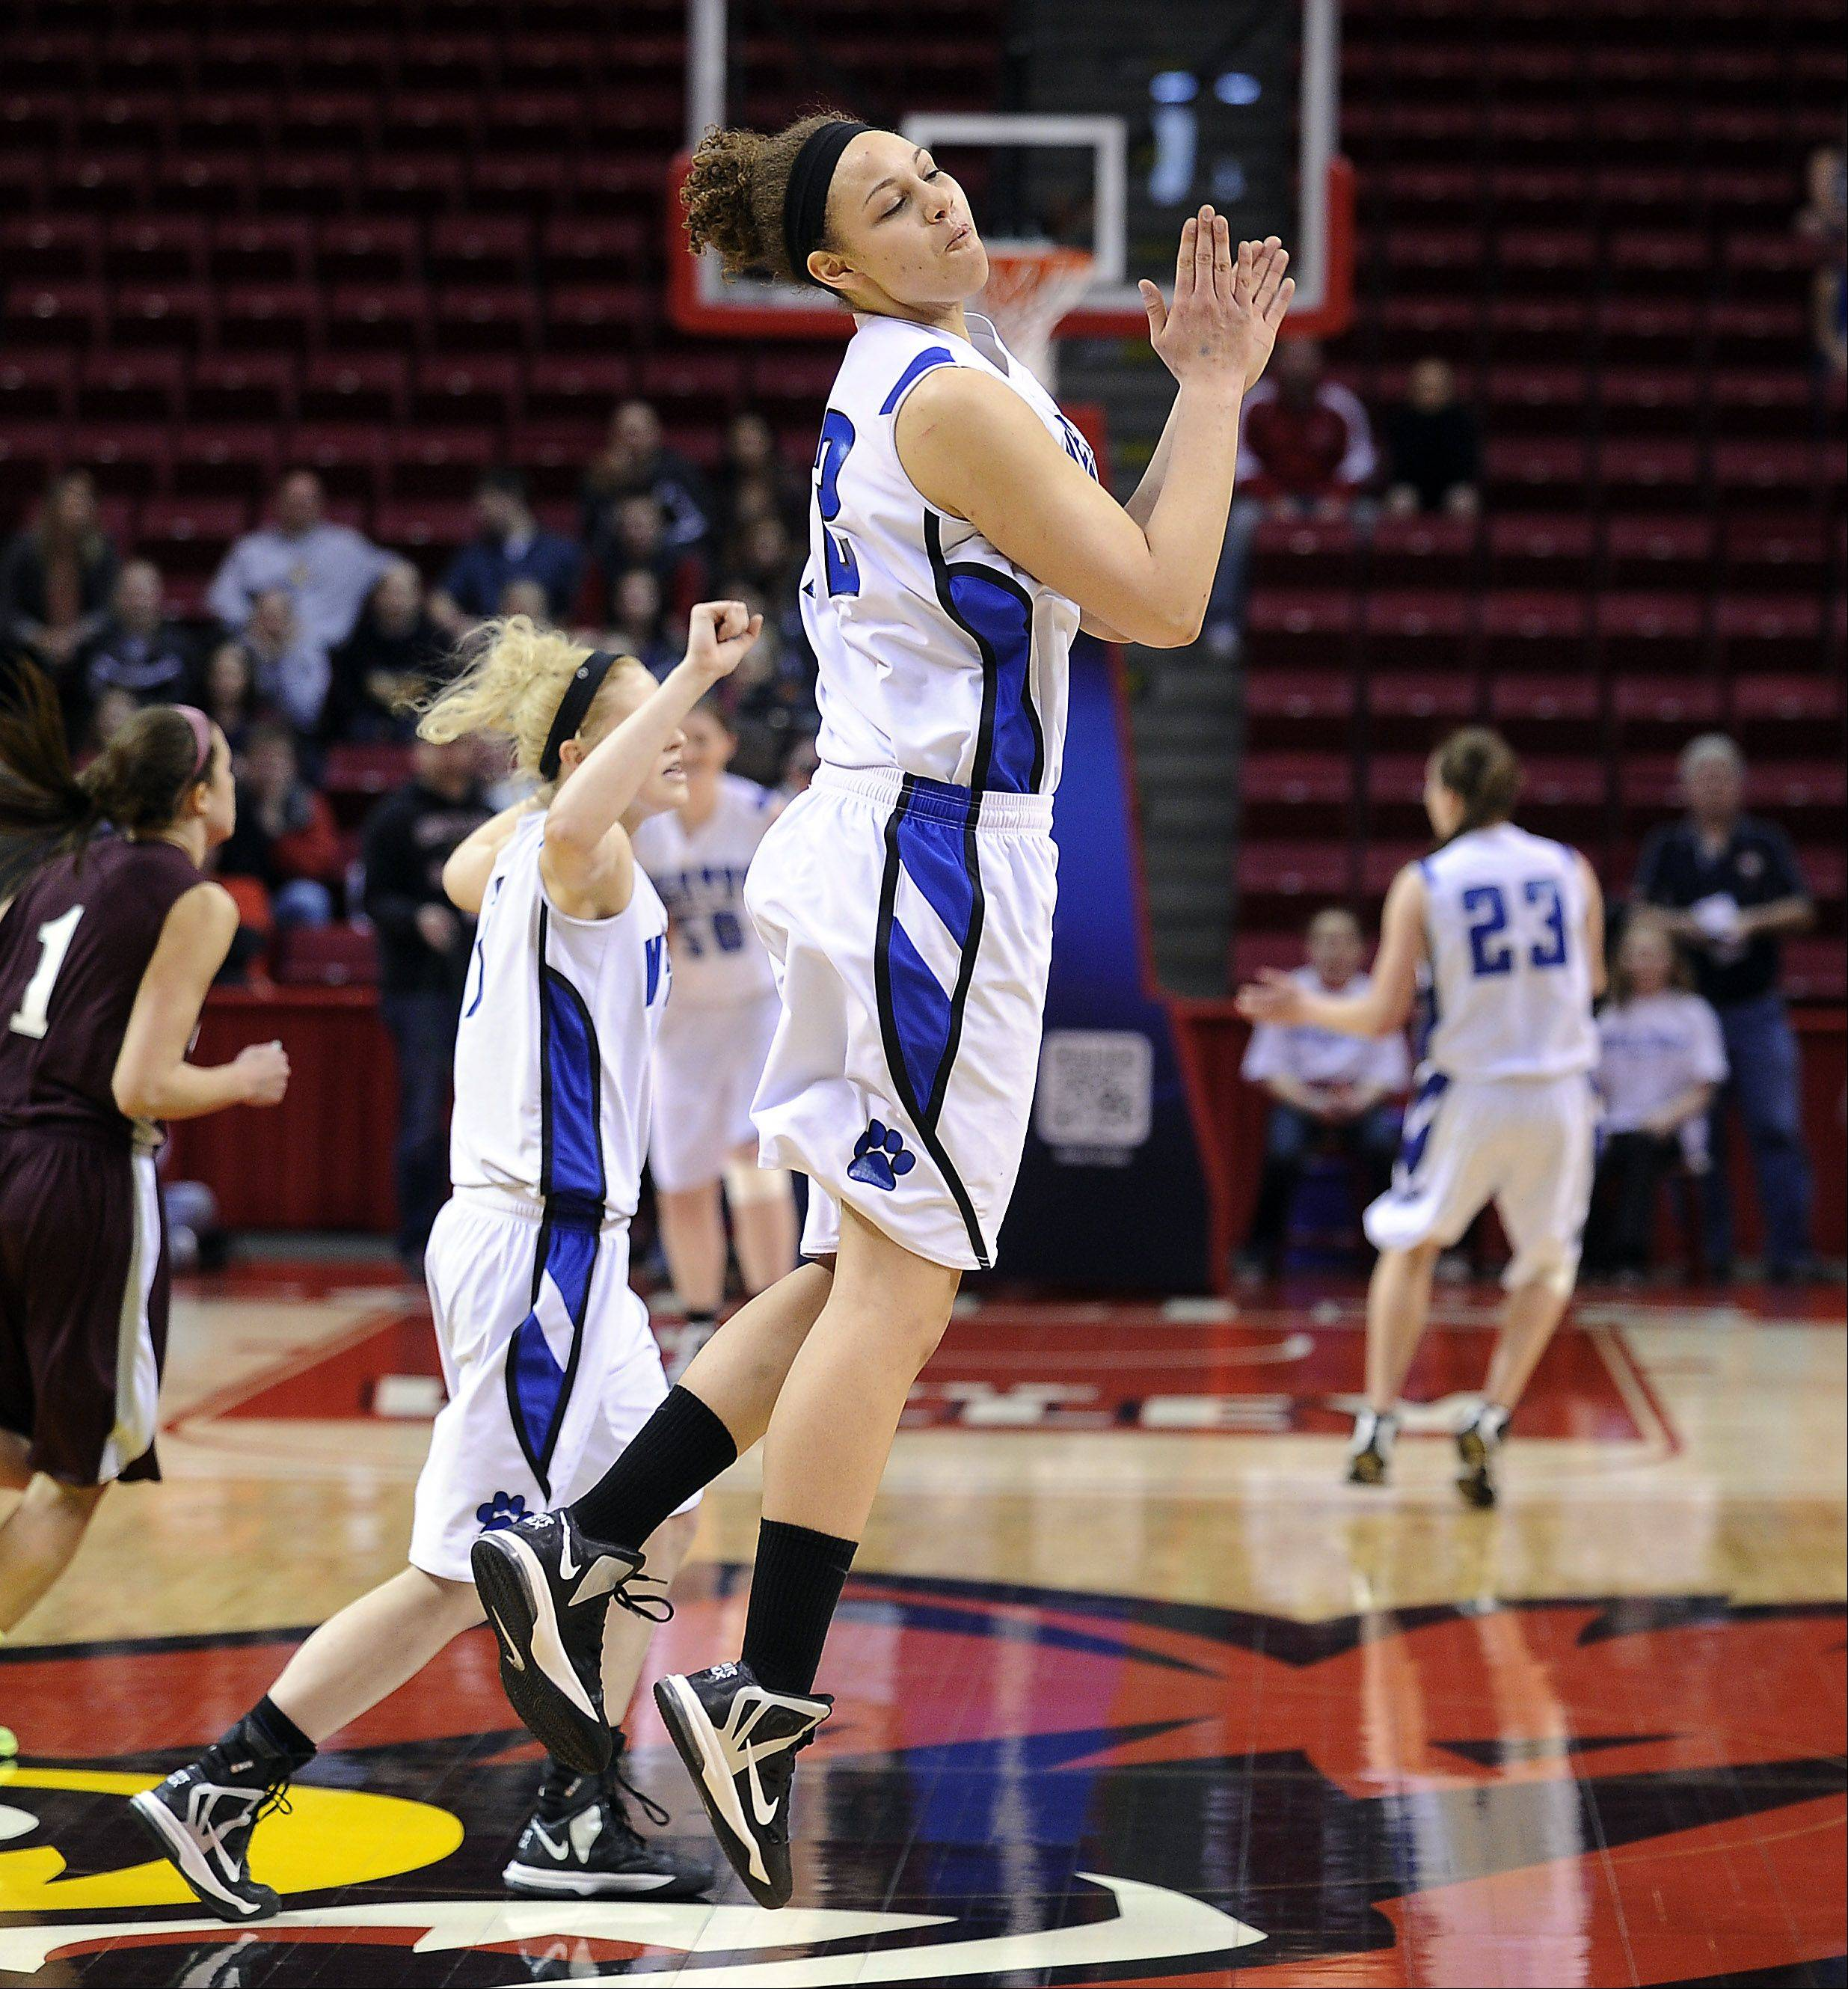 Vernon Hills' Lauren Webb celebrates with teammates.